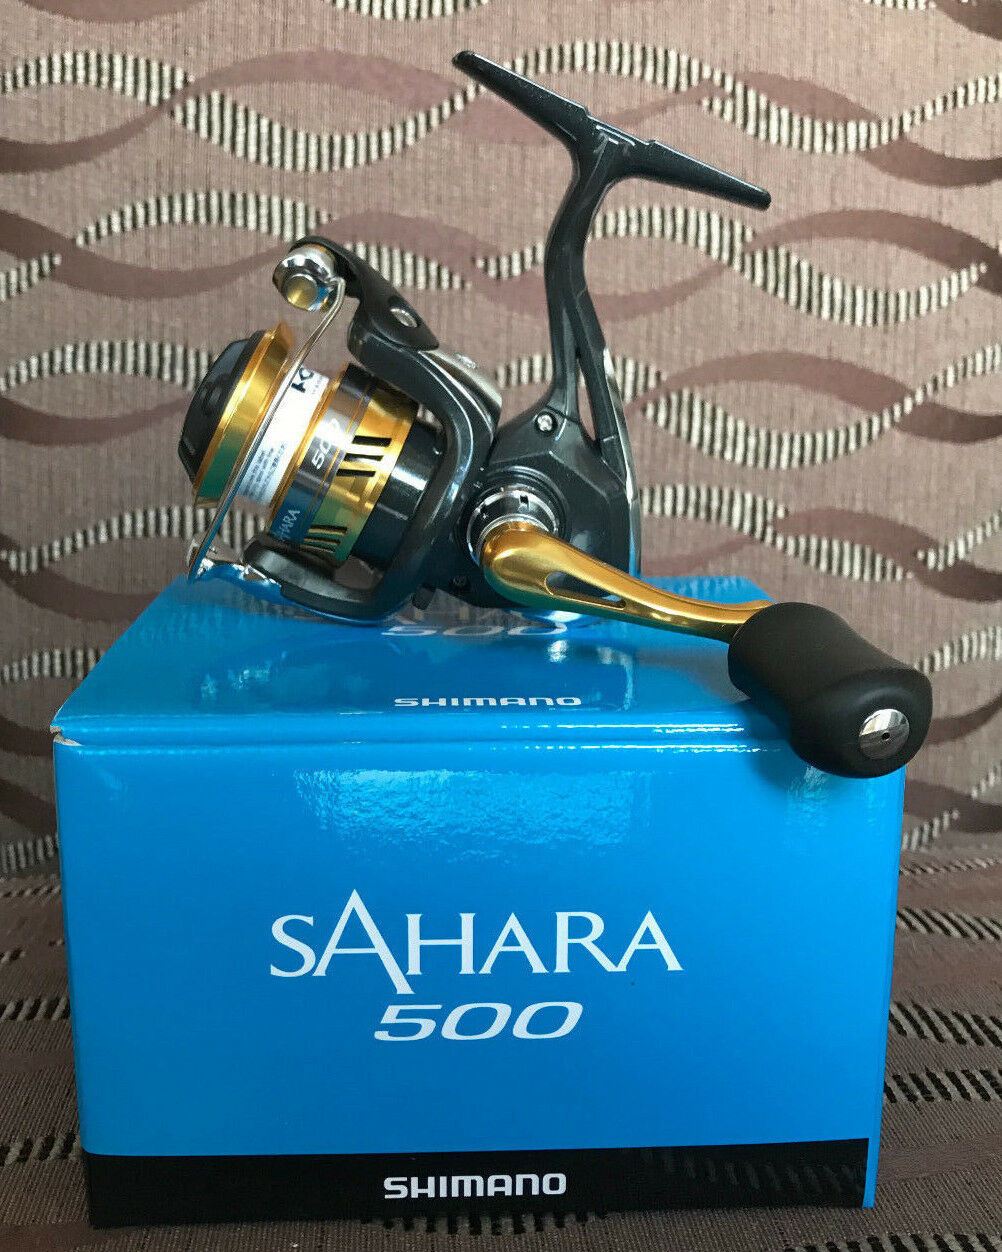 Shimano Sahara 500 FI  Spinnrolle  buy 100% authentic quality